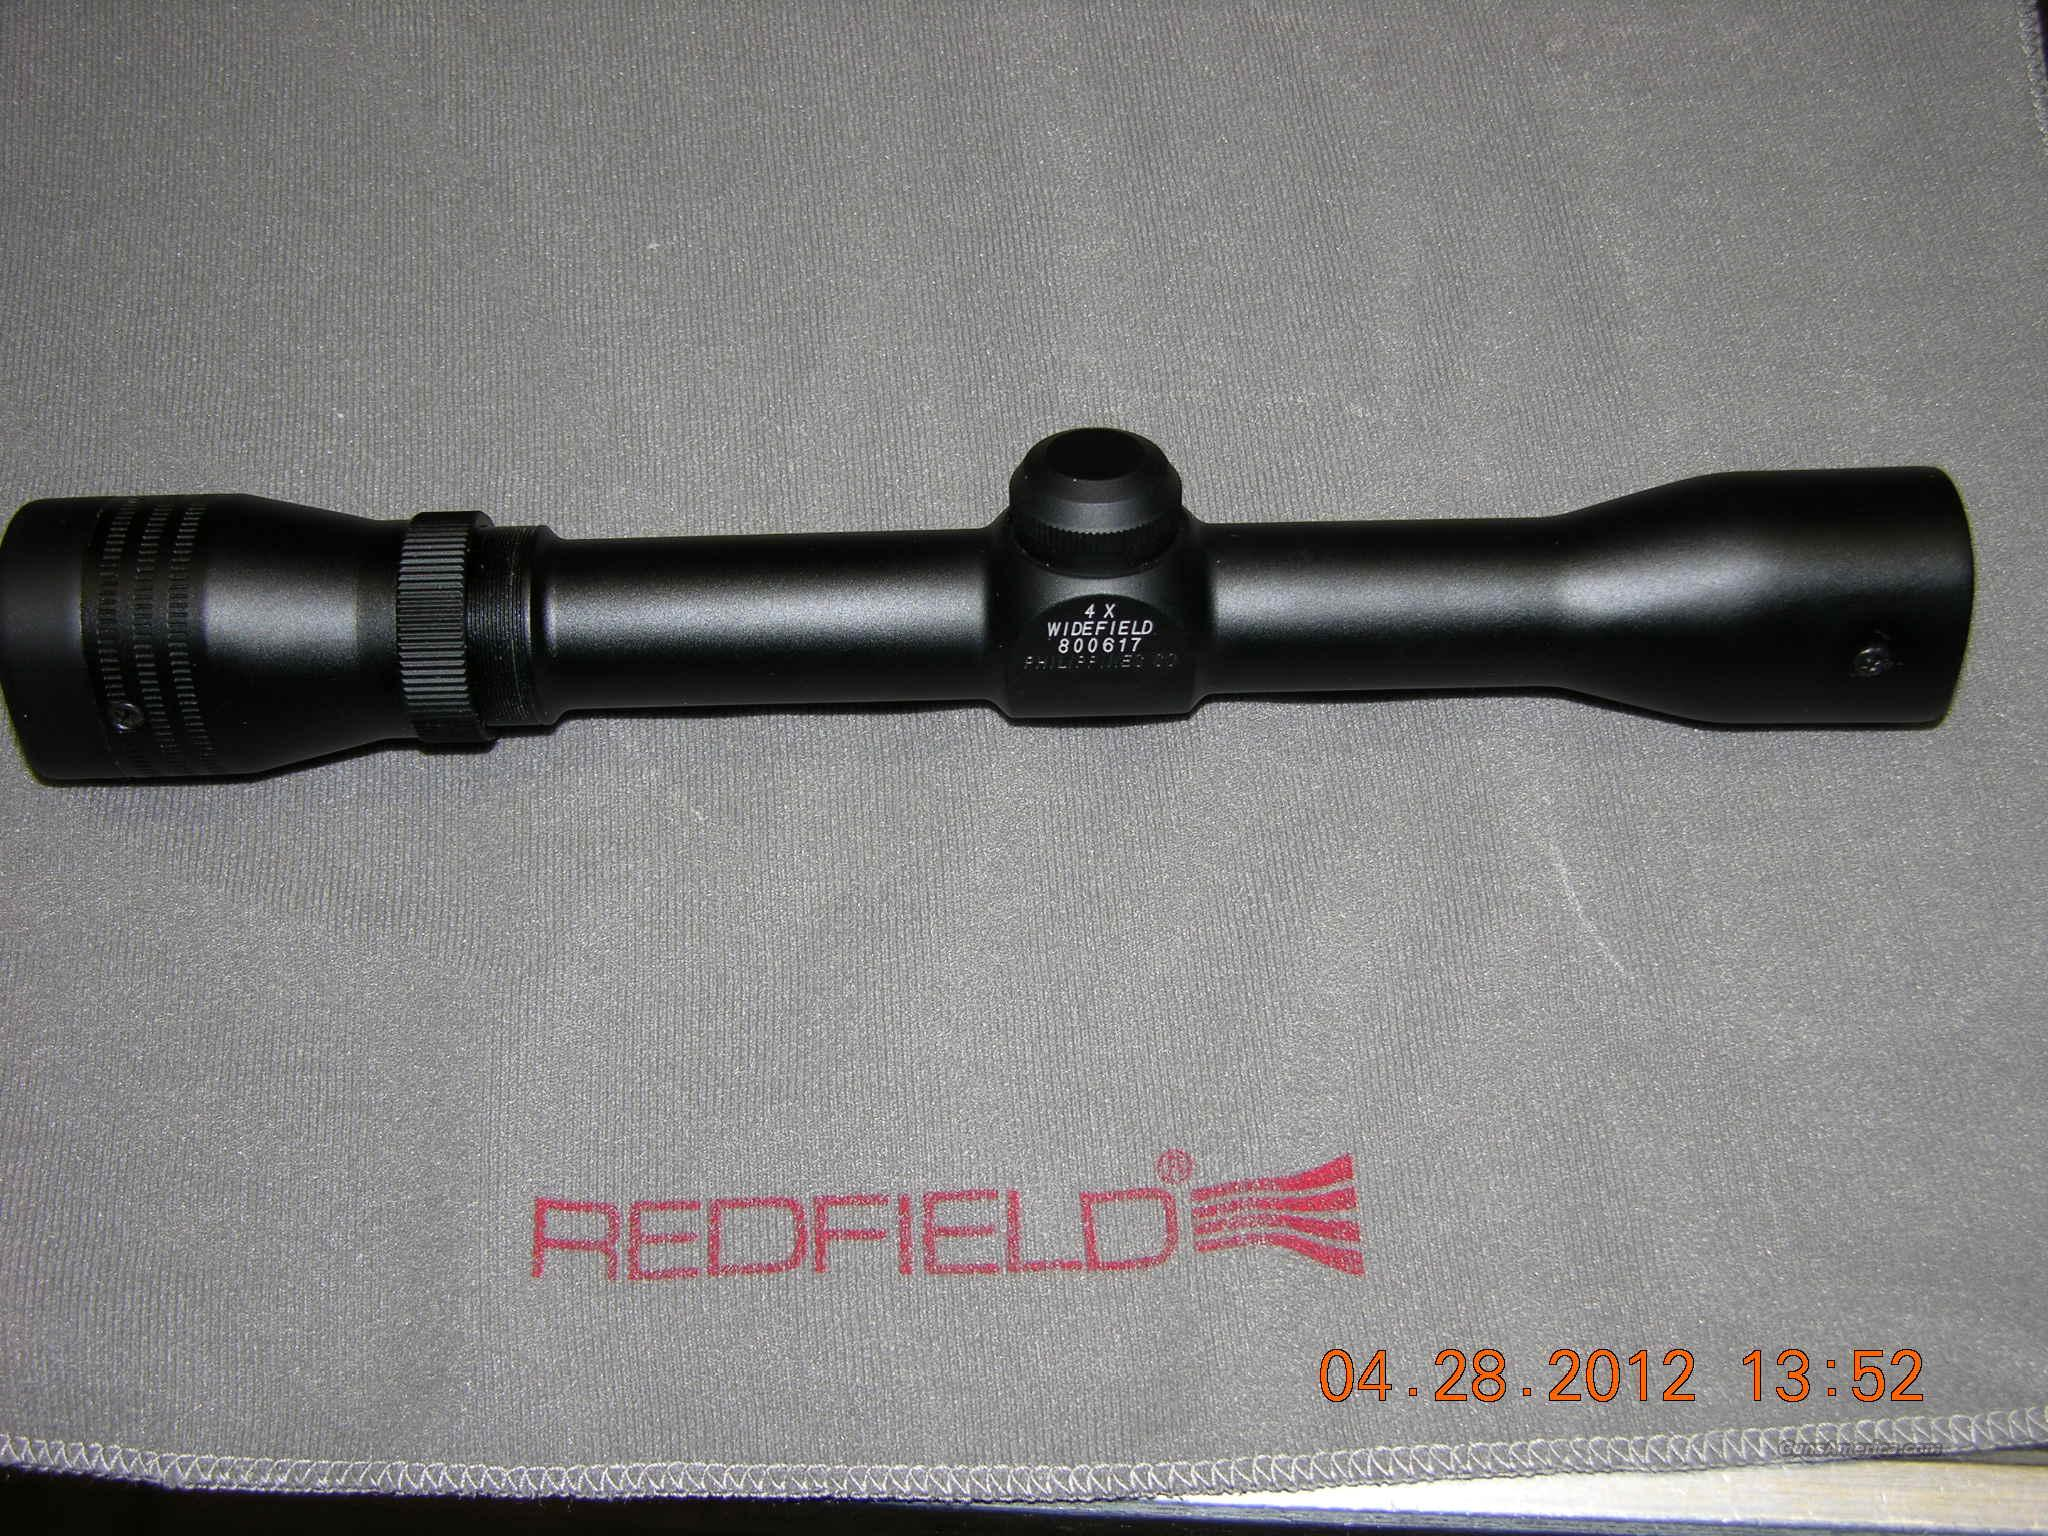 Redfield Widefield Waterproof 4x scope NIB  Non-Guns > Scopes/Mounts/Rings & Optics > Rifle Scopes > Fixed Focal Length